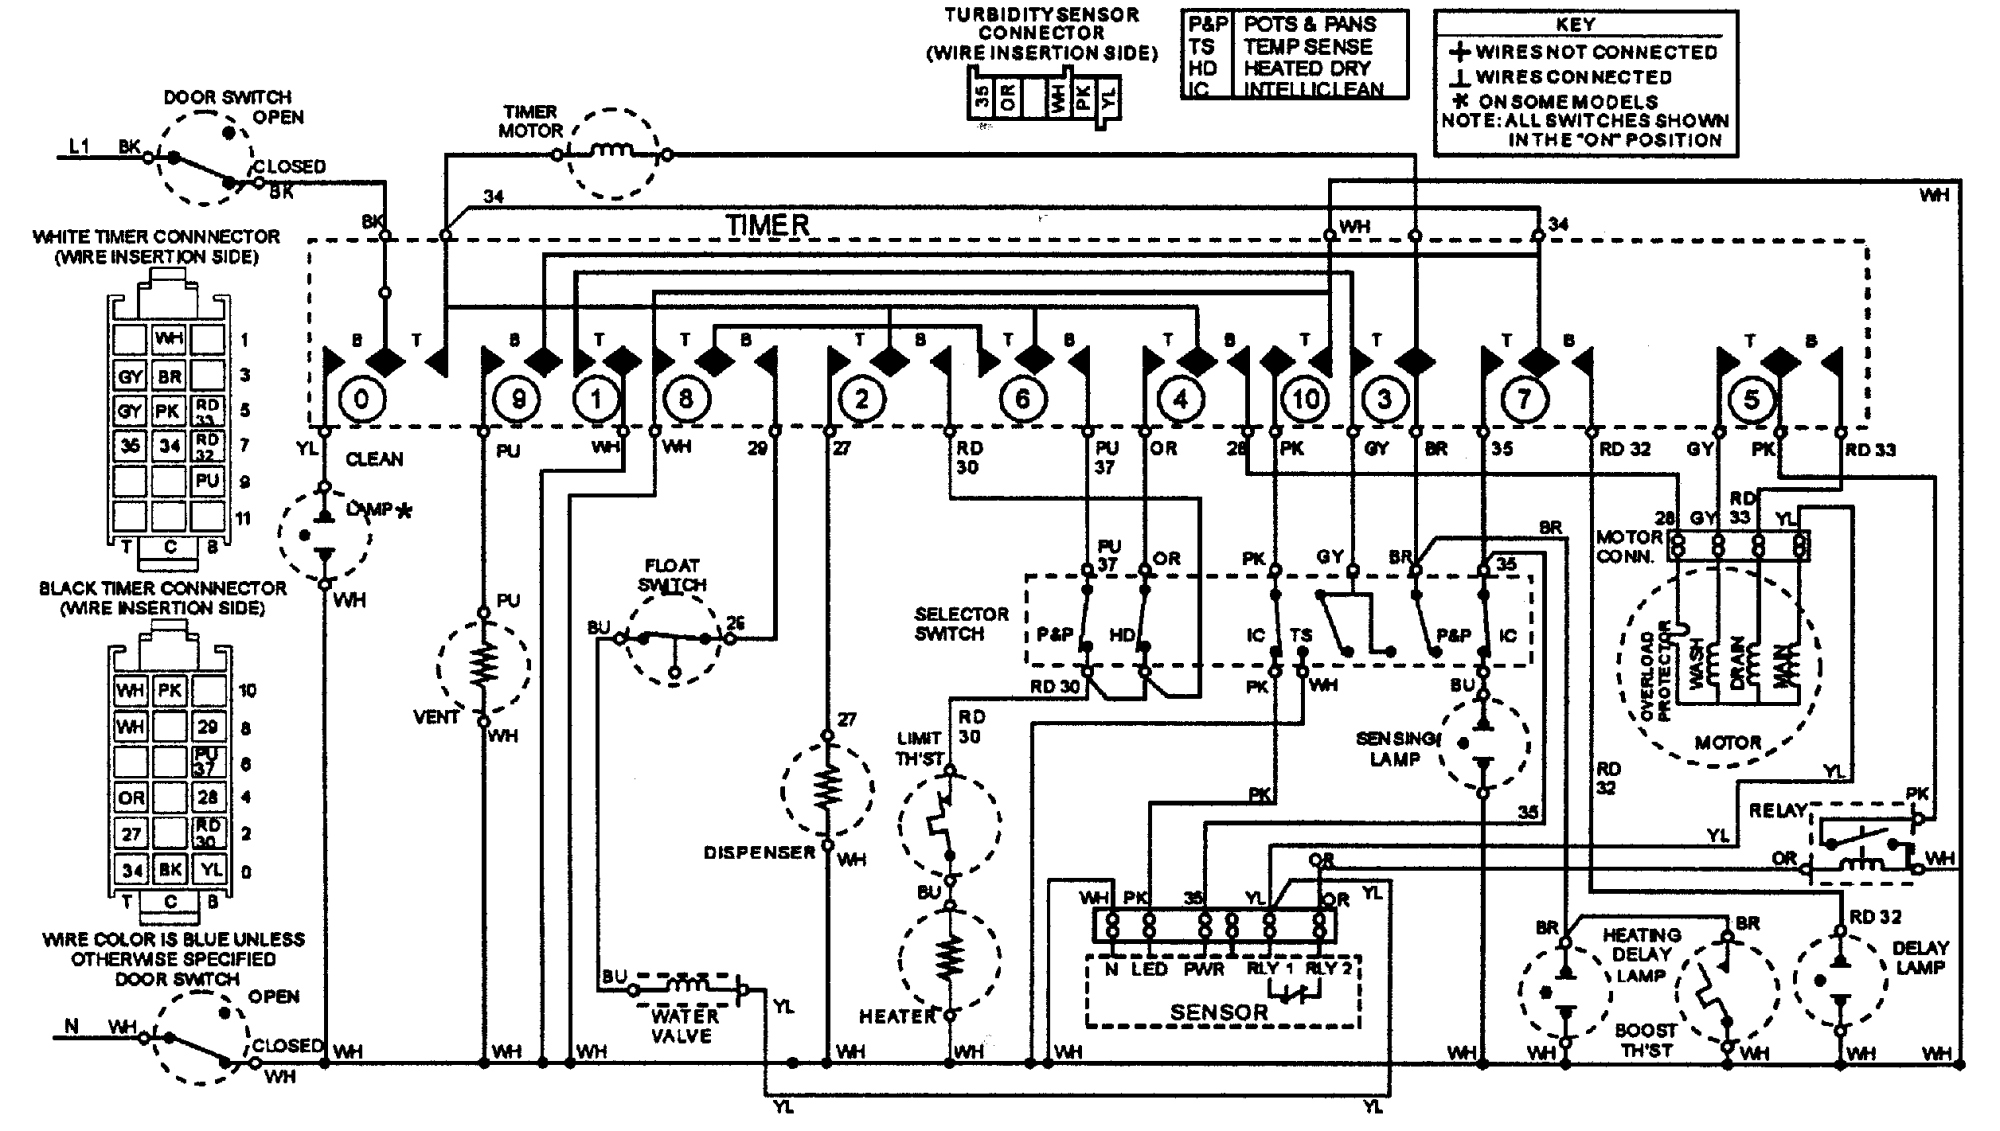 hight resolution of whirlpool dishwasher schematic wiring diagram third level rh 5 19 13 jacobwinterstein com whirlpool dishwasher model numbers listings whirlpool gold